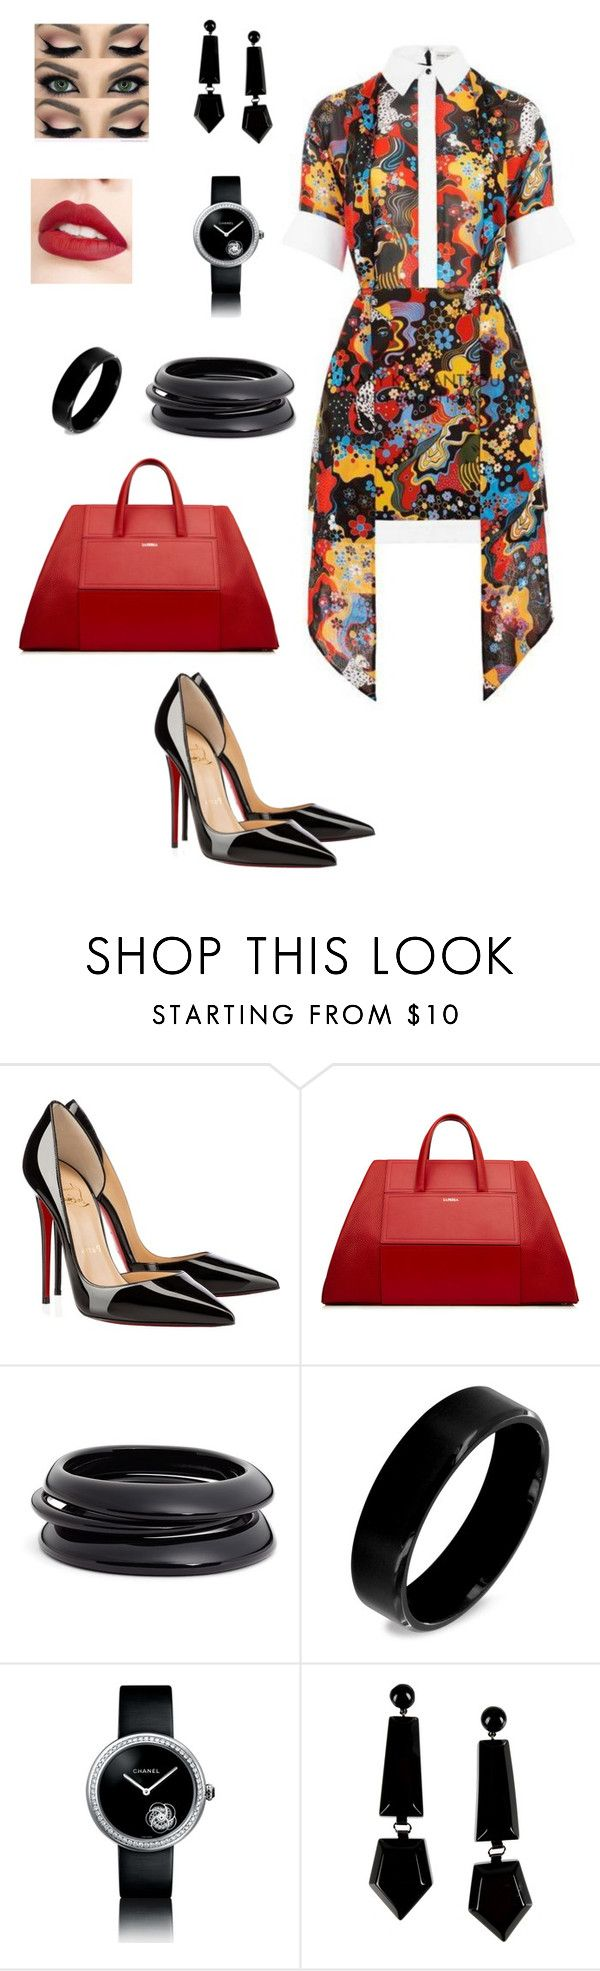 """""""Untitled #319"""" by tamara-kesic ❤ liked on Polyvore featuring Christian Louboutin, ZENZii, West Coast Jewelry, Chanel, Emporio Armani and Jouer"""